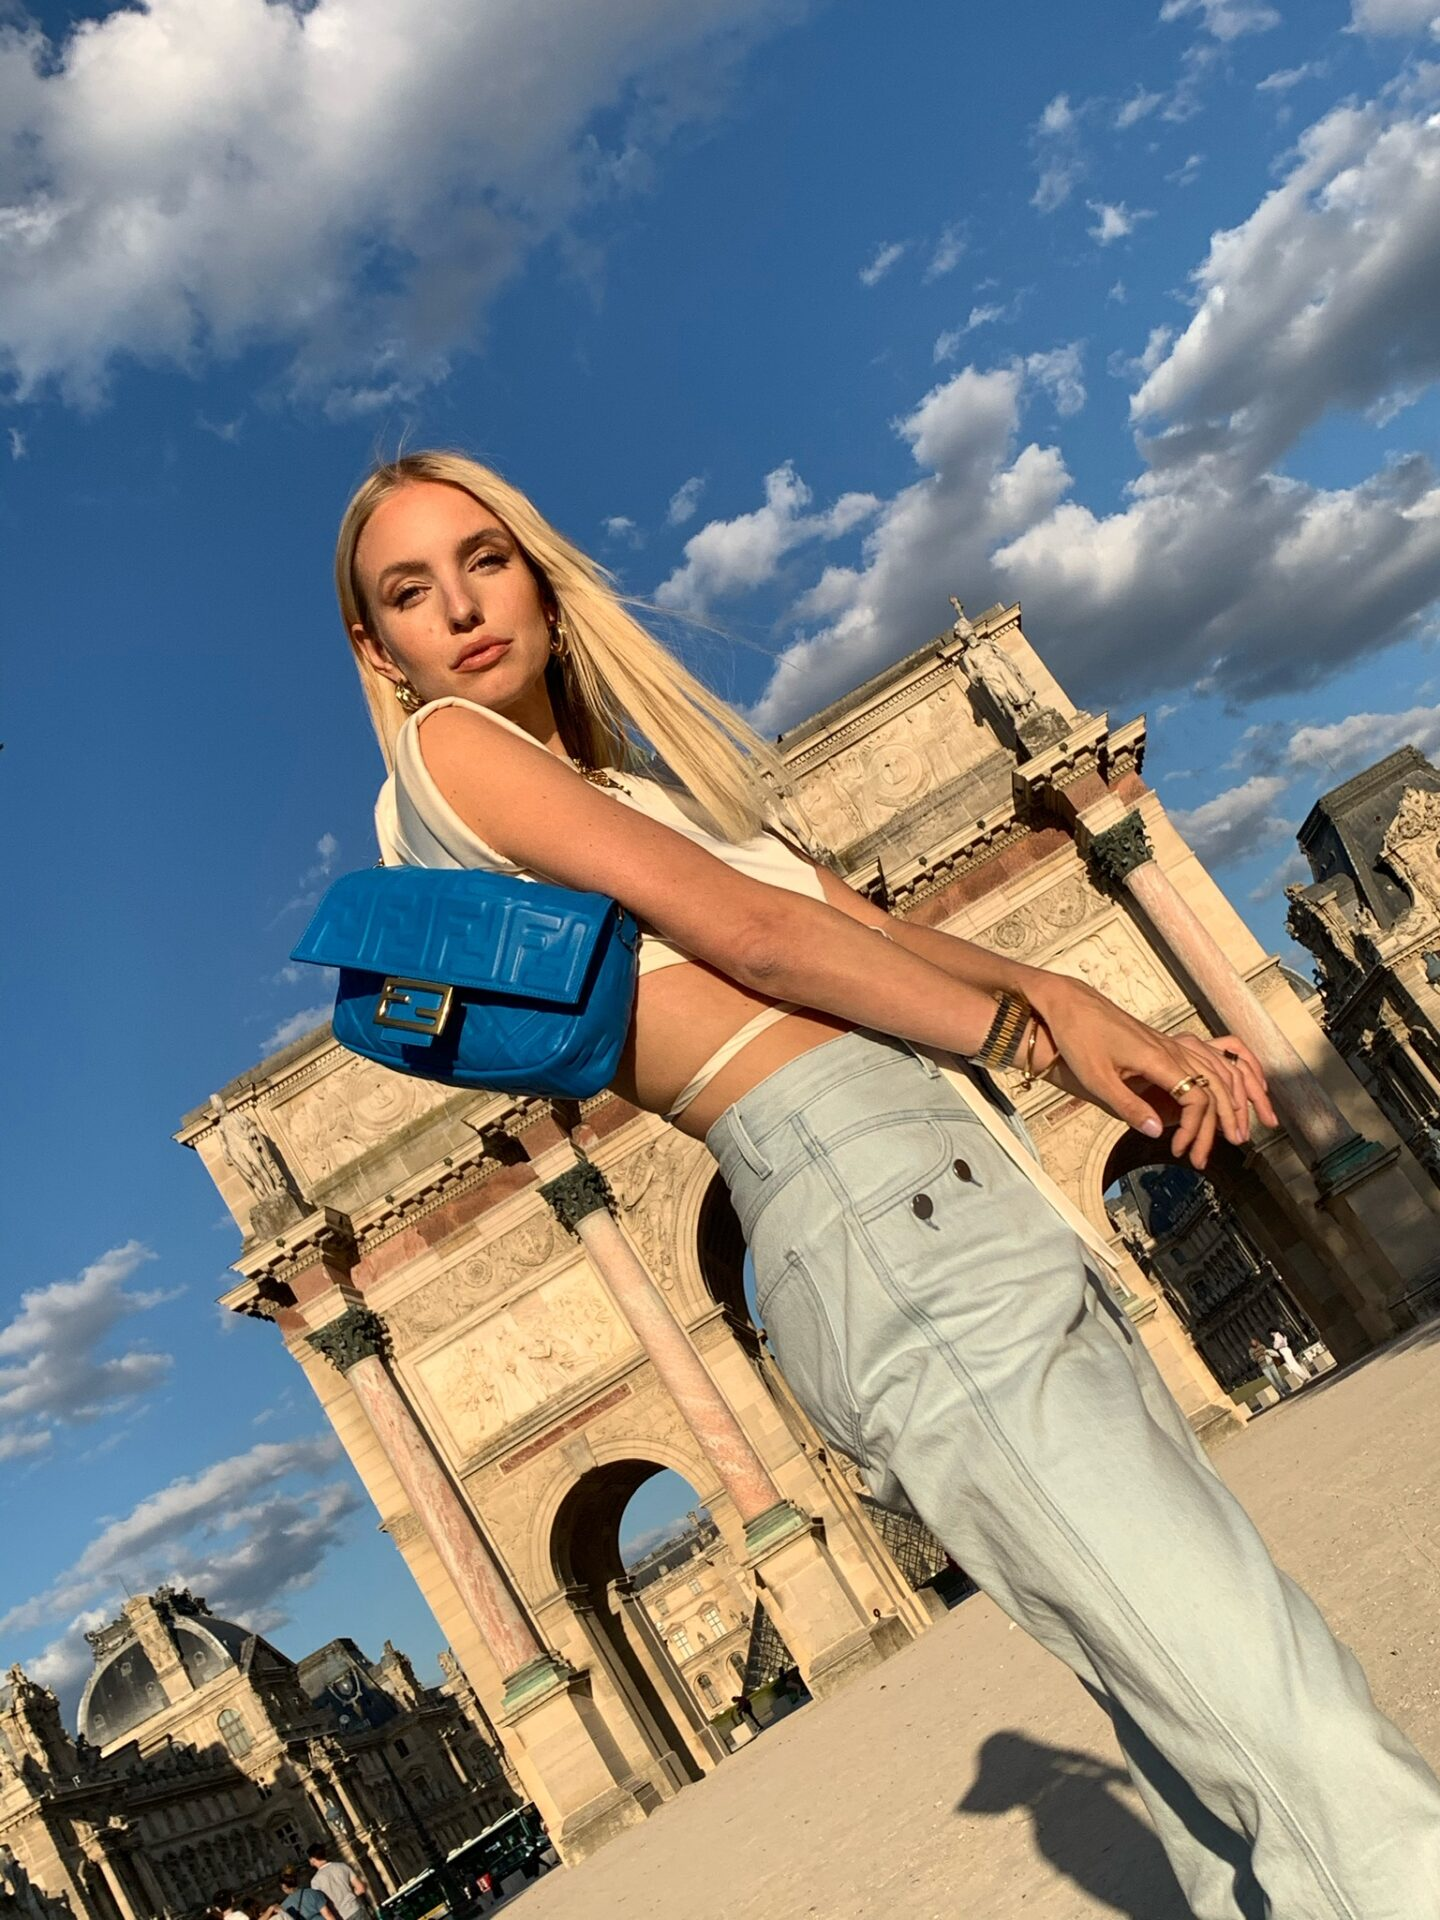 Fendi Baguette and Louvre